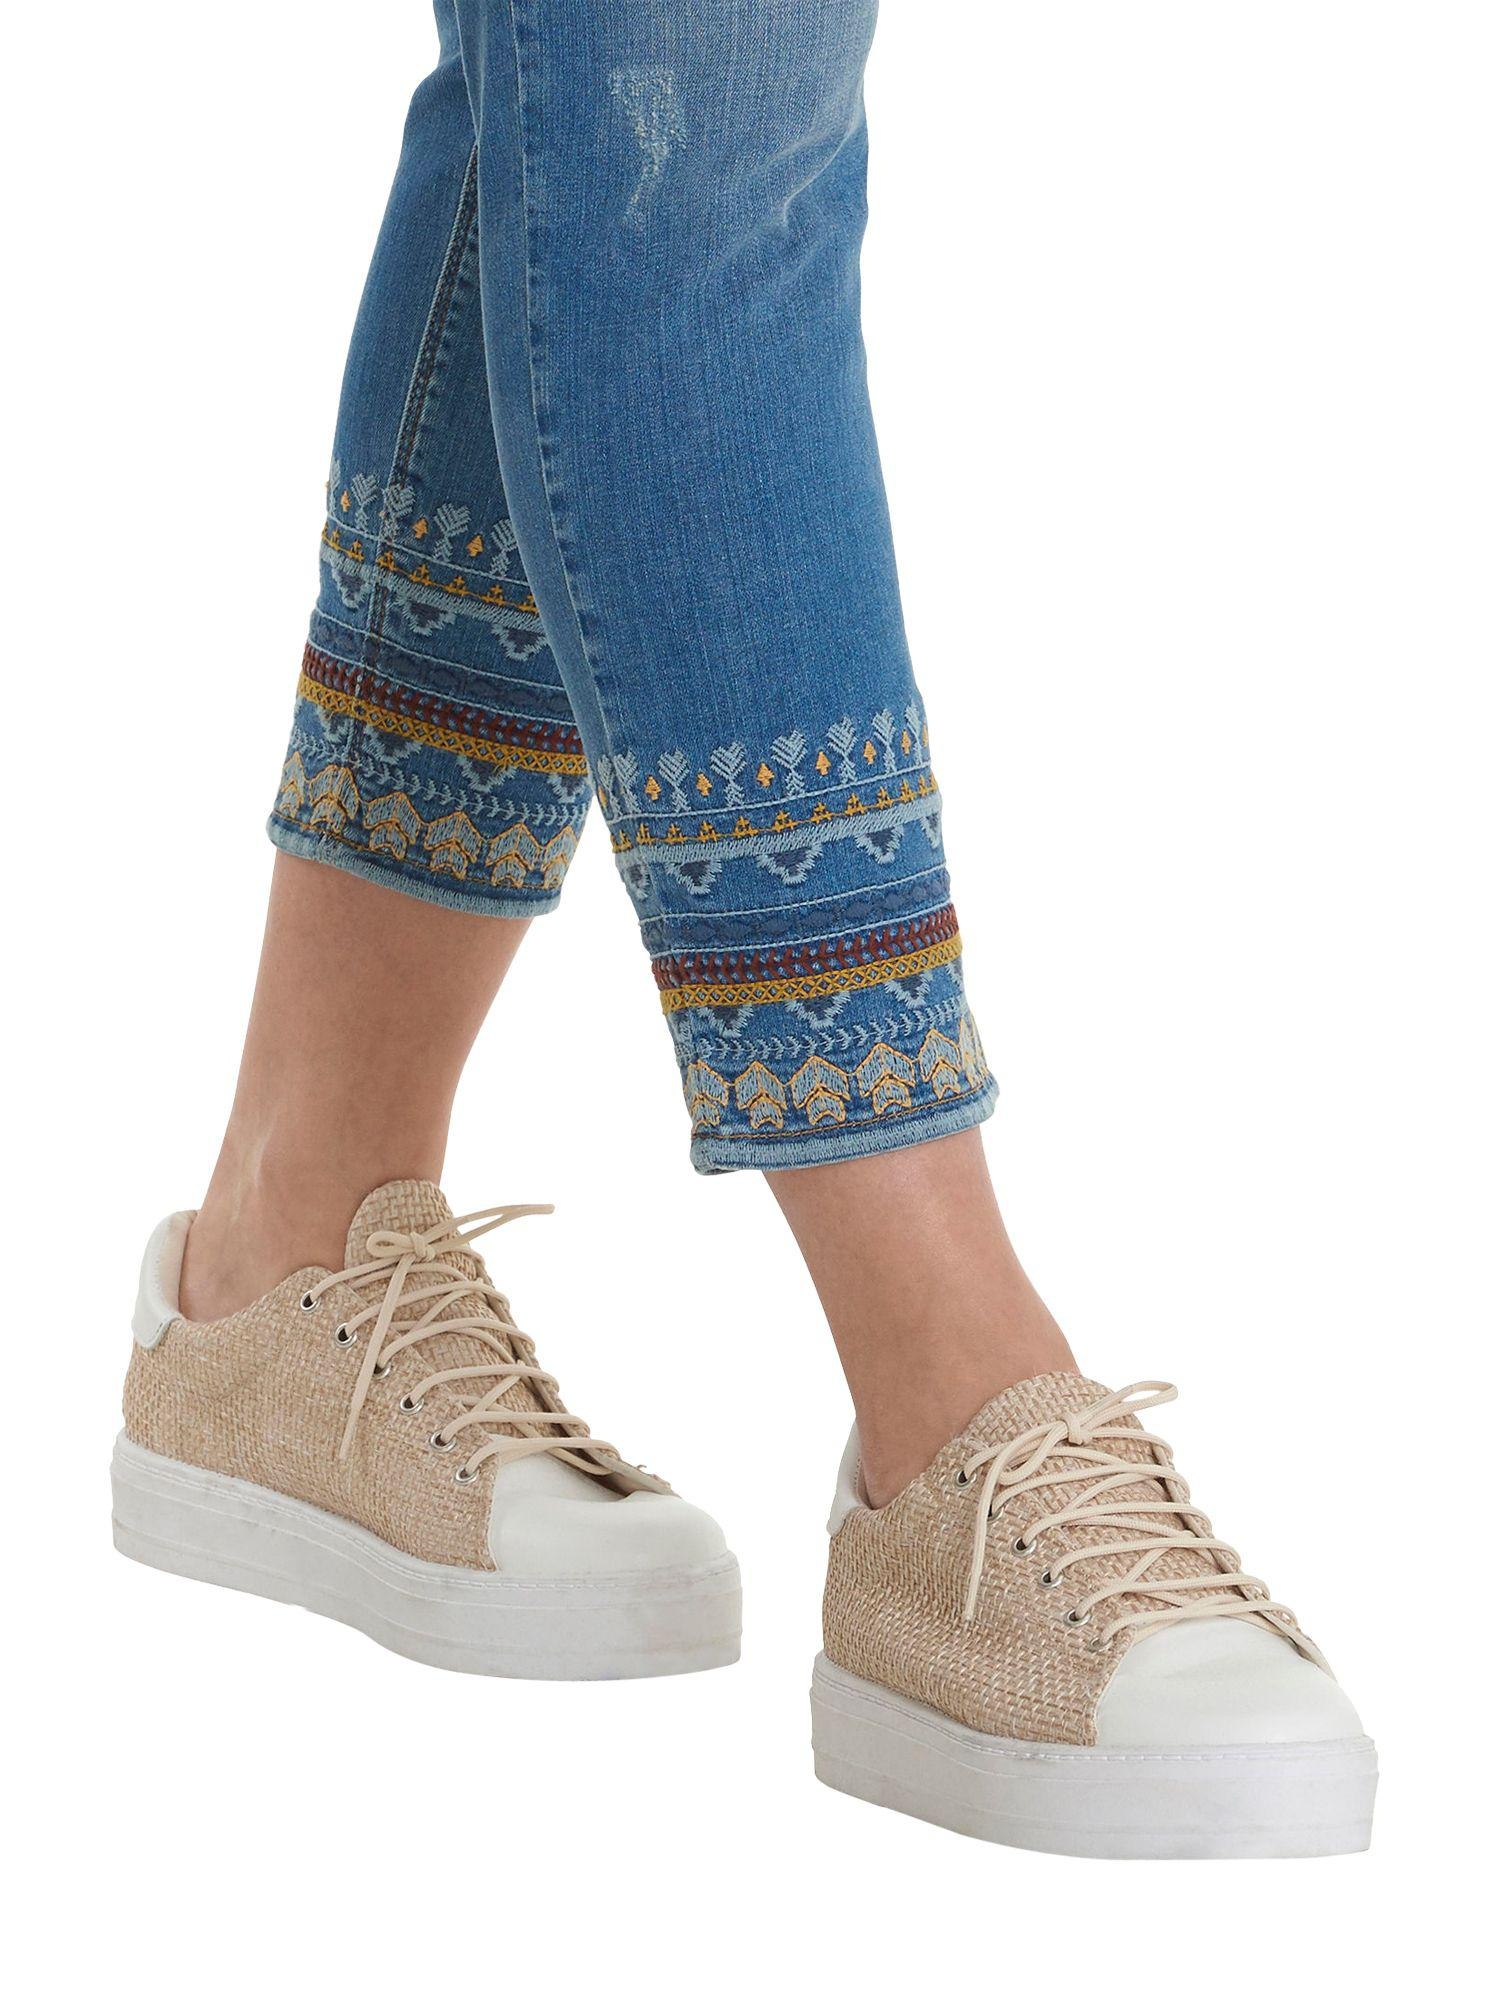 Betty Barclay Denim Cropped Embroidered Jeans in Light Blue (Blue)